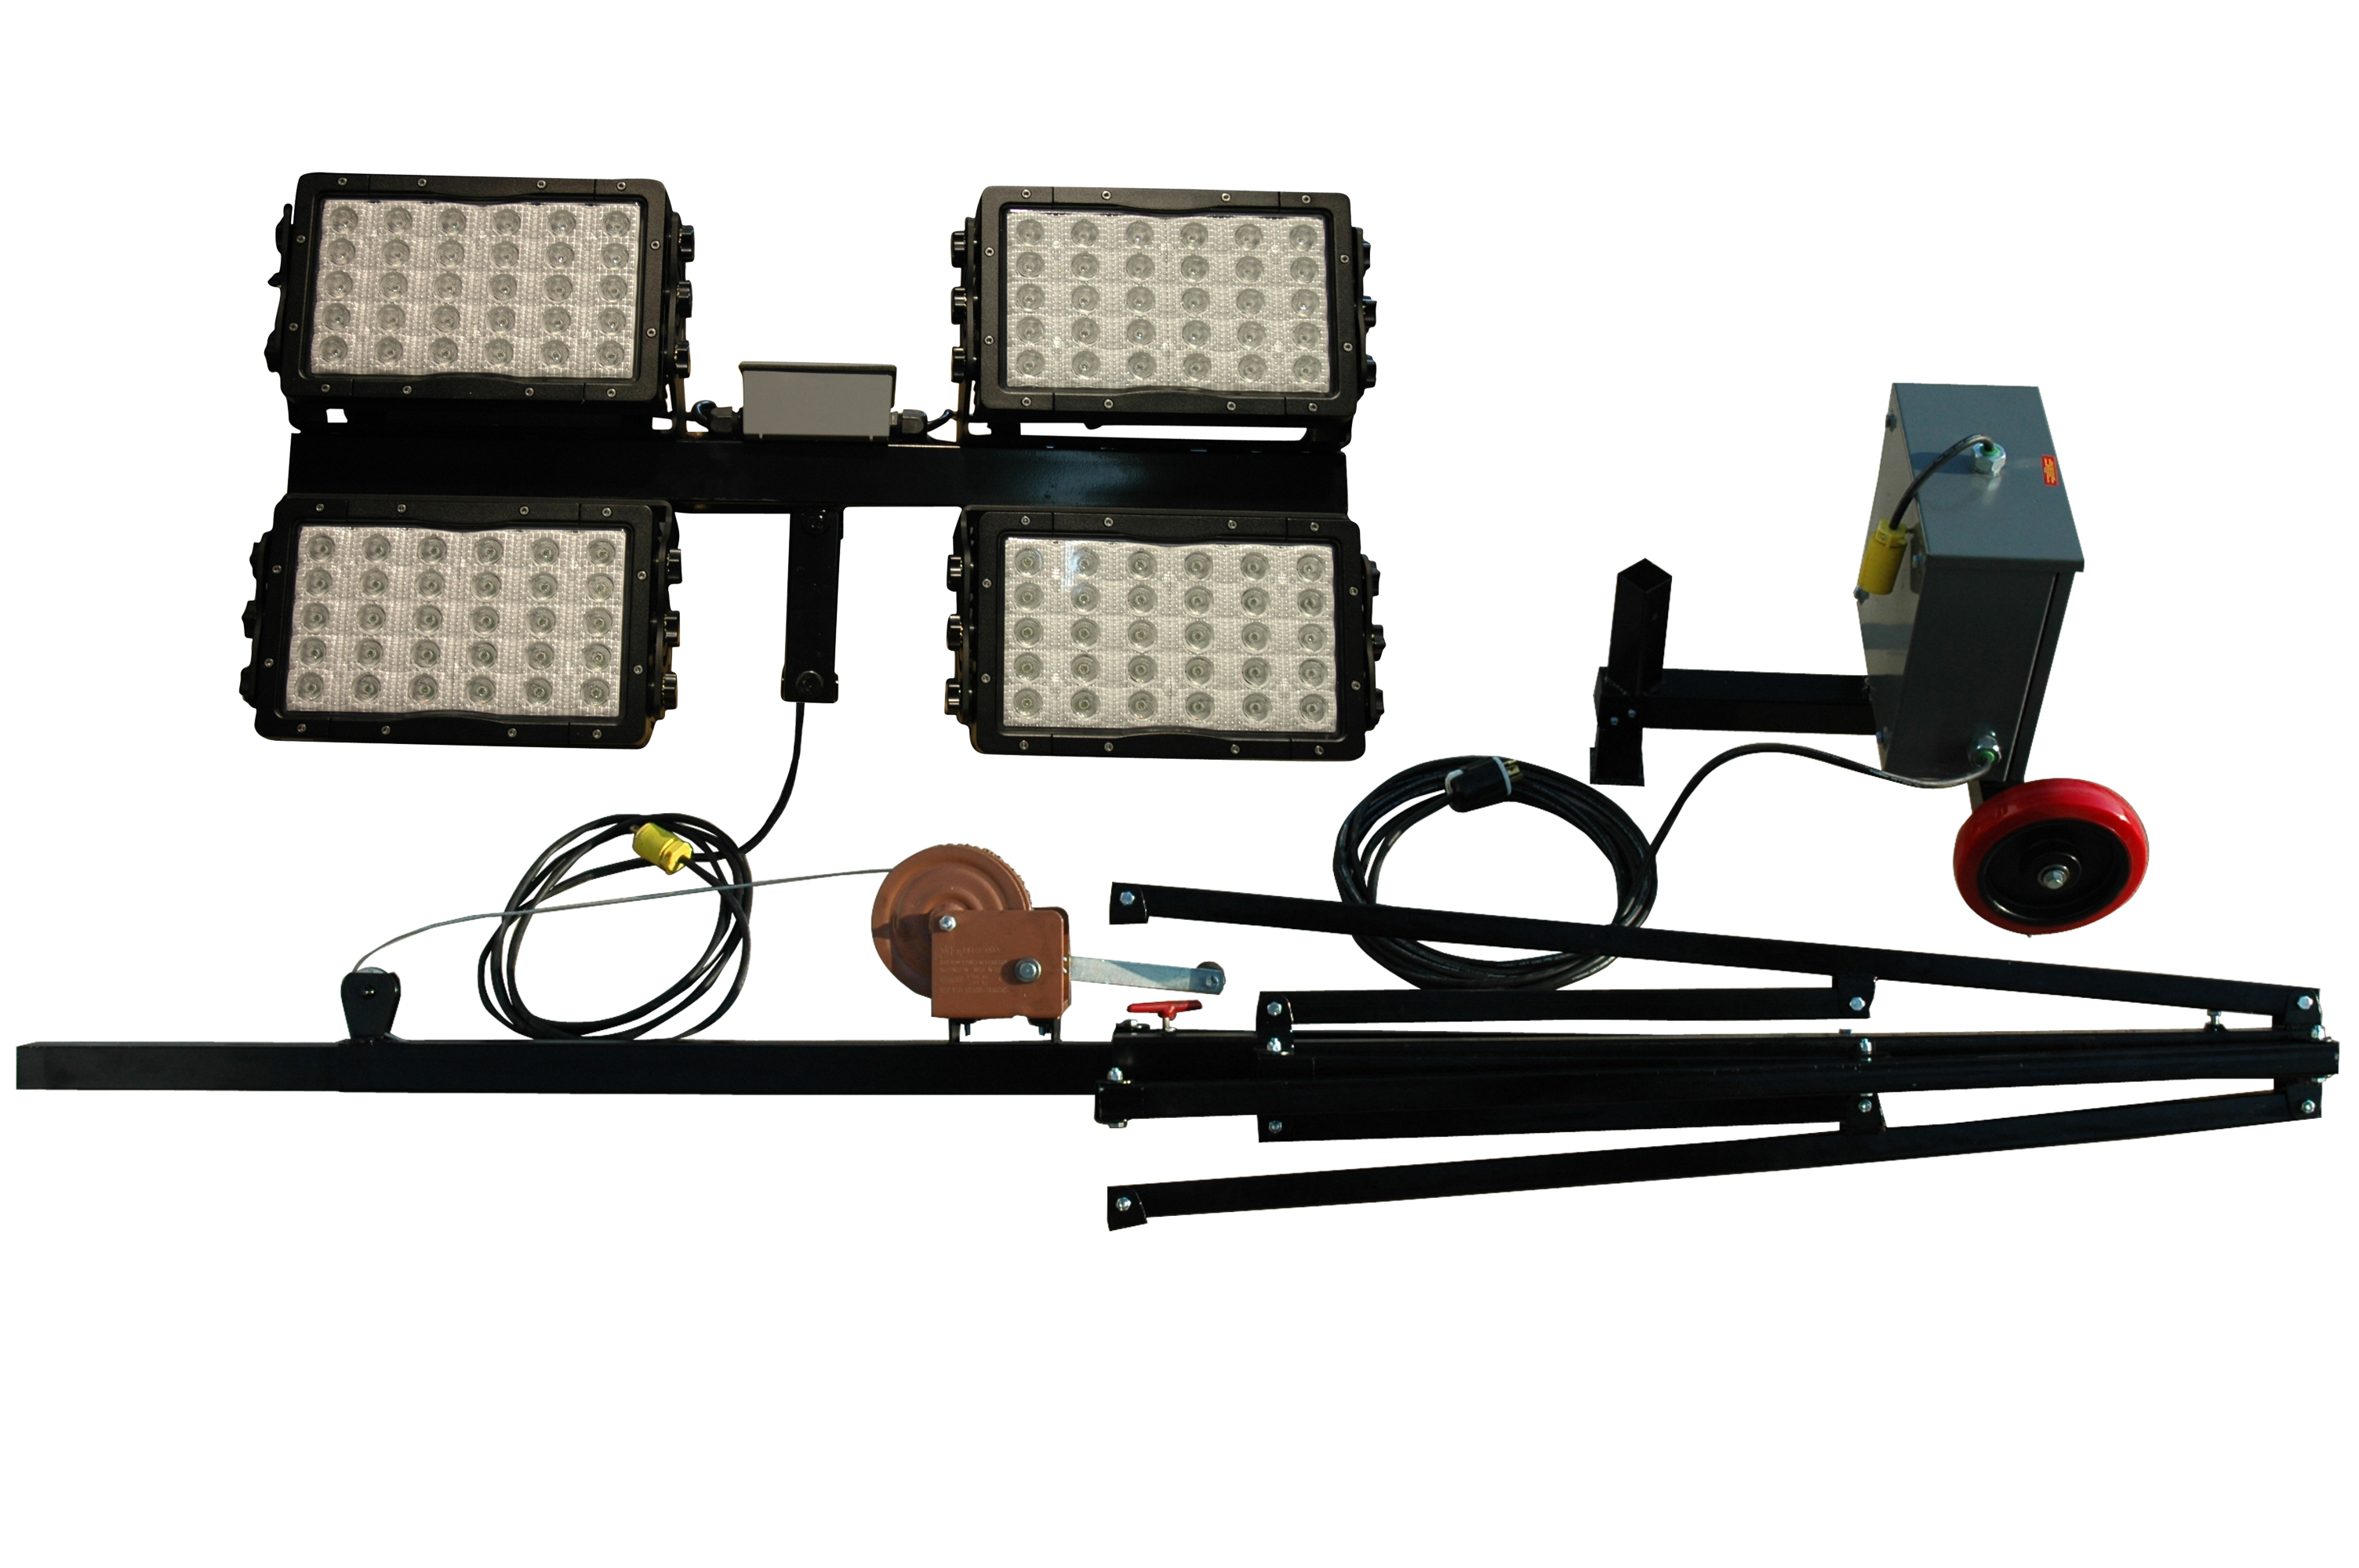 New Light Tower from Magnalight.com Provides High Output ...